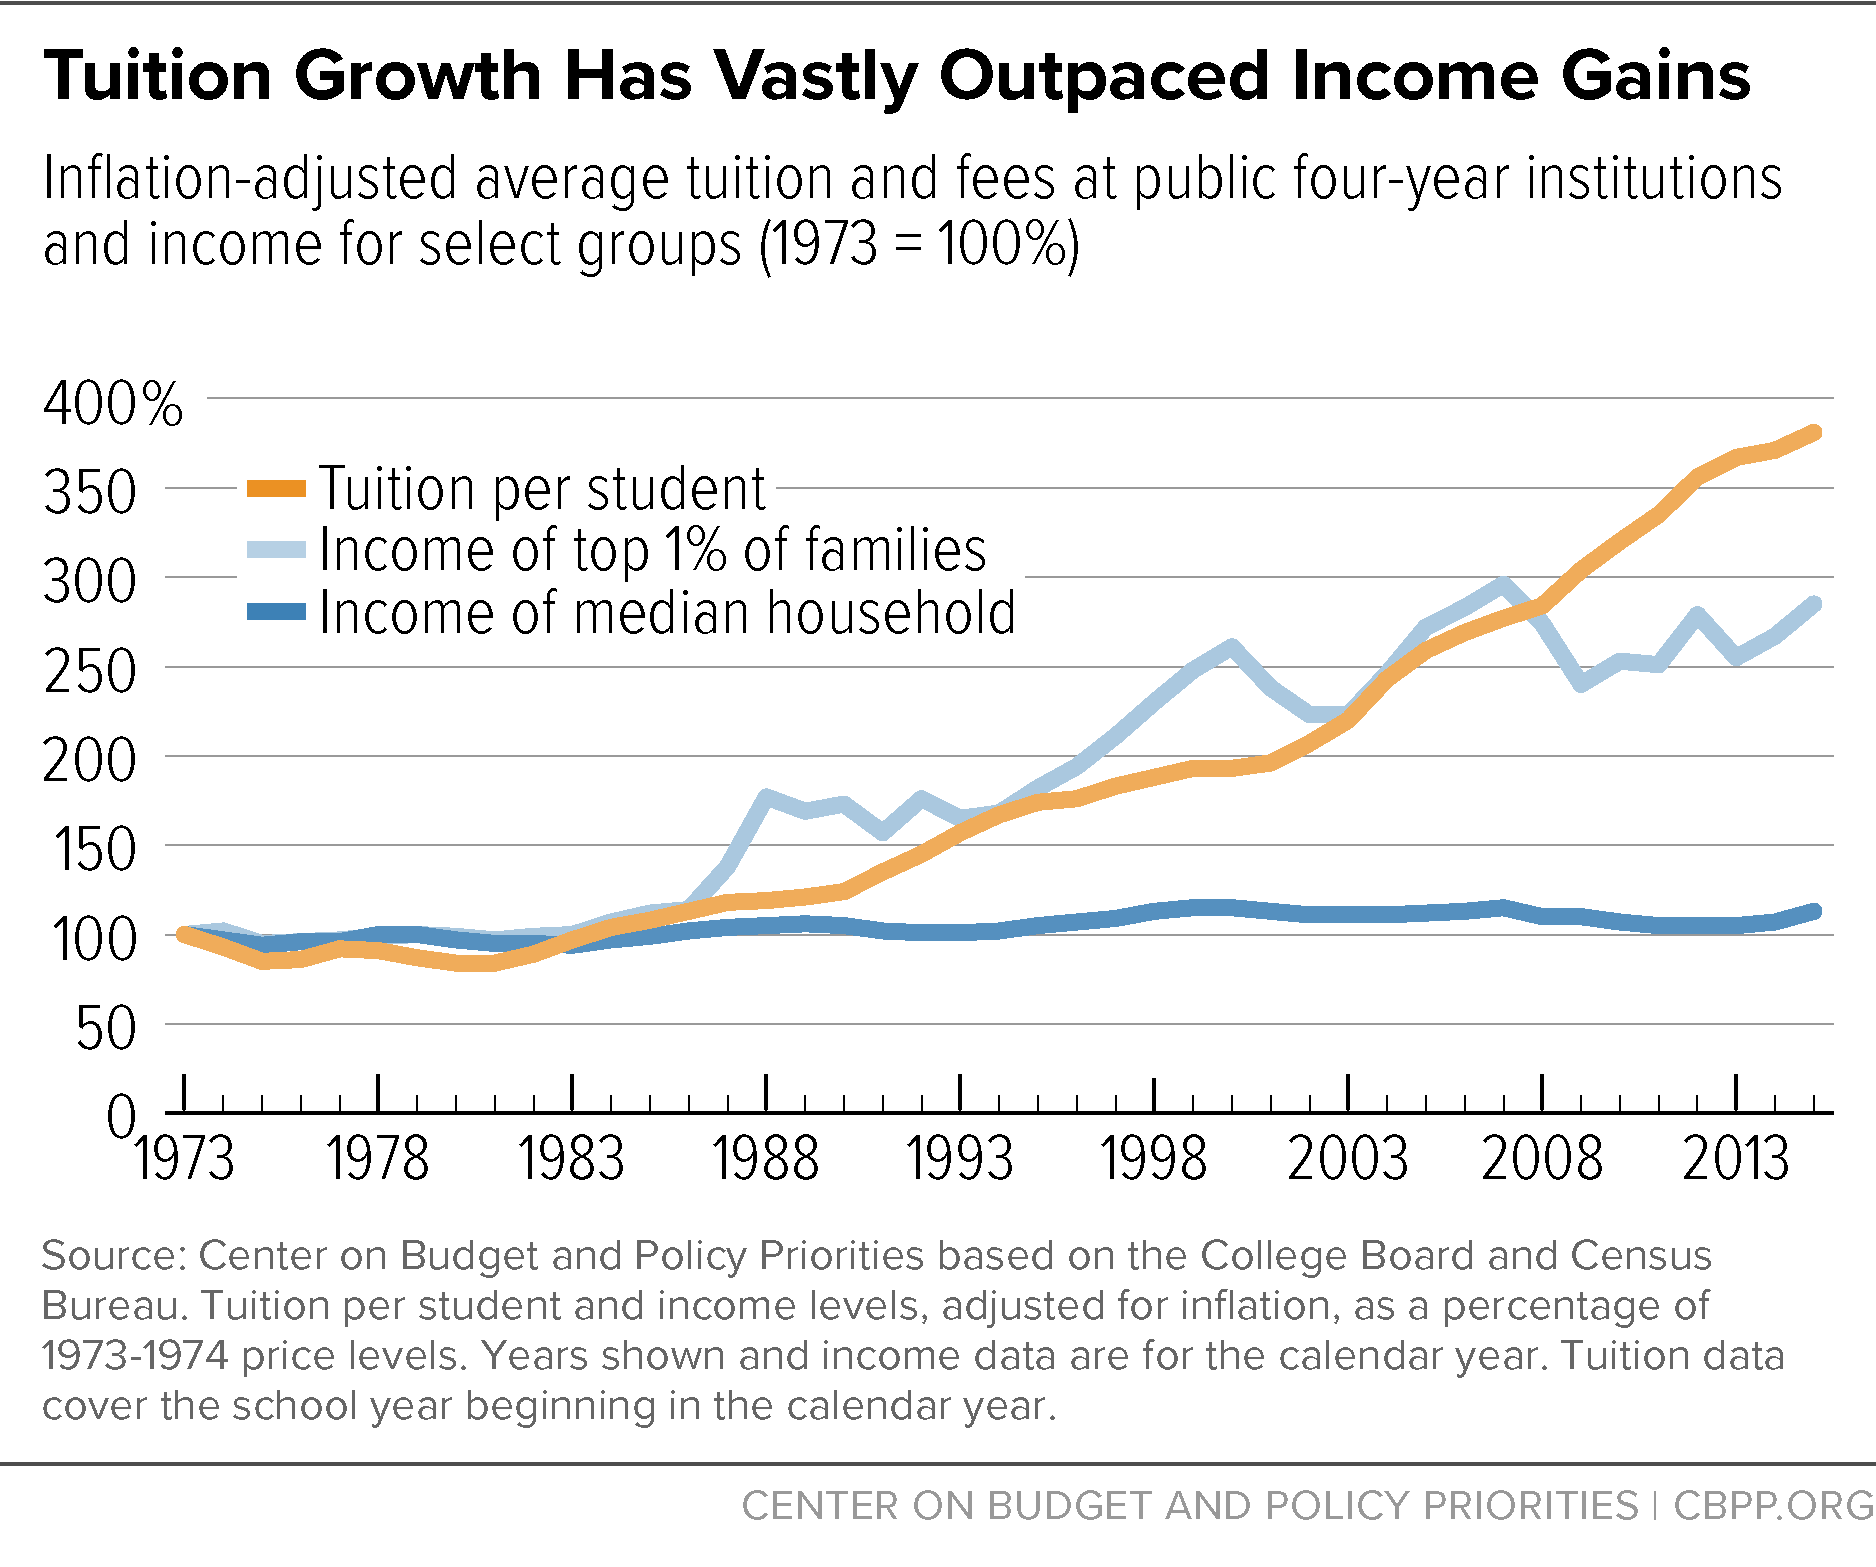 Tuition Growth Has Vastly Outpaced Income Gains